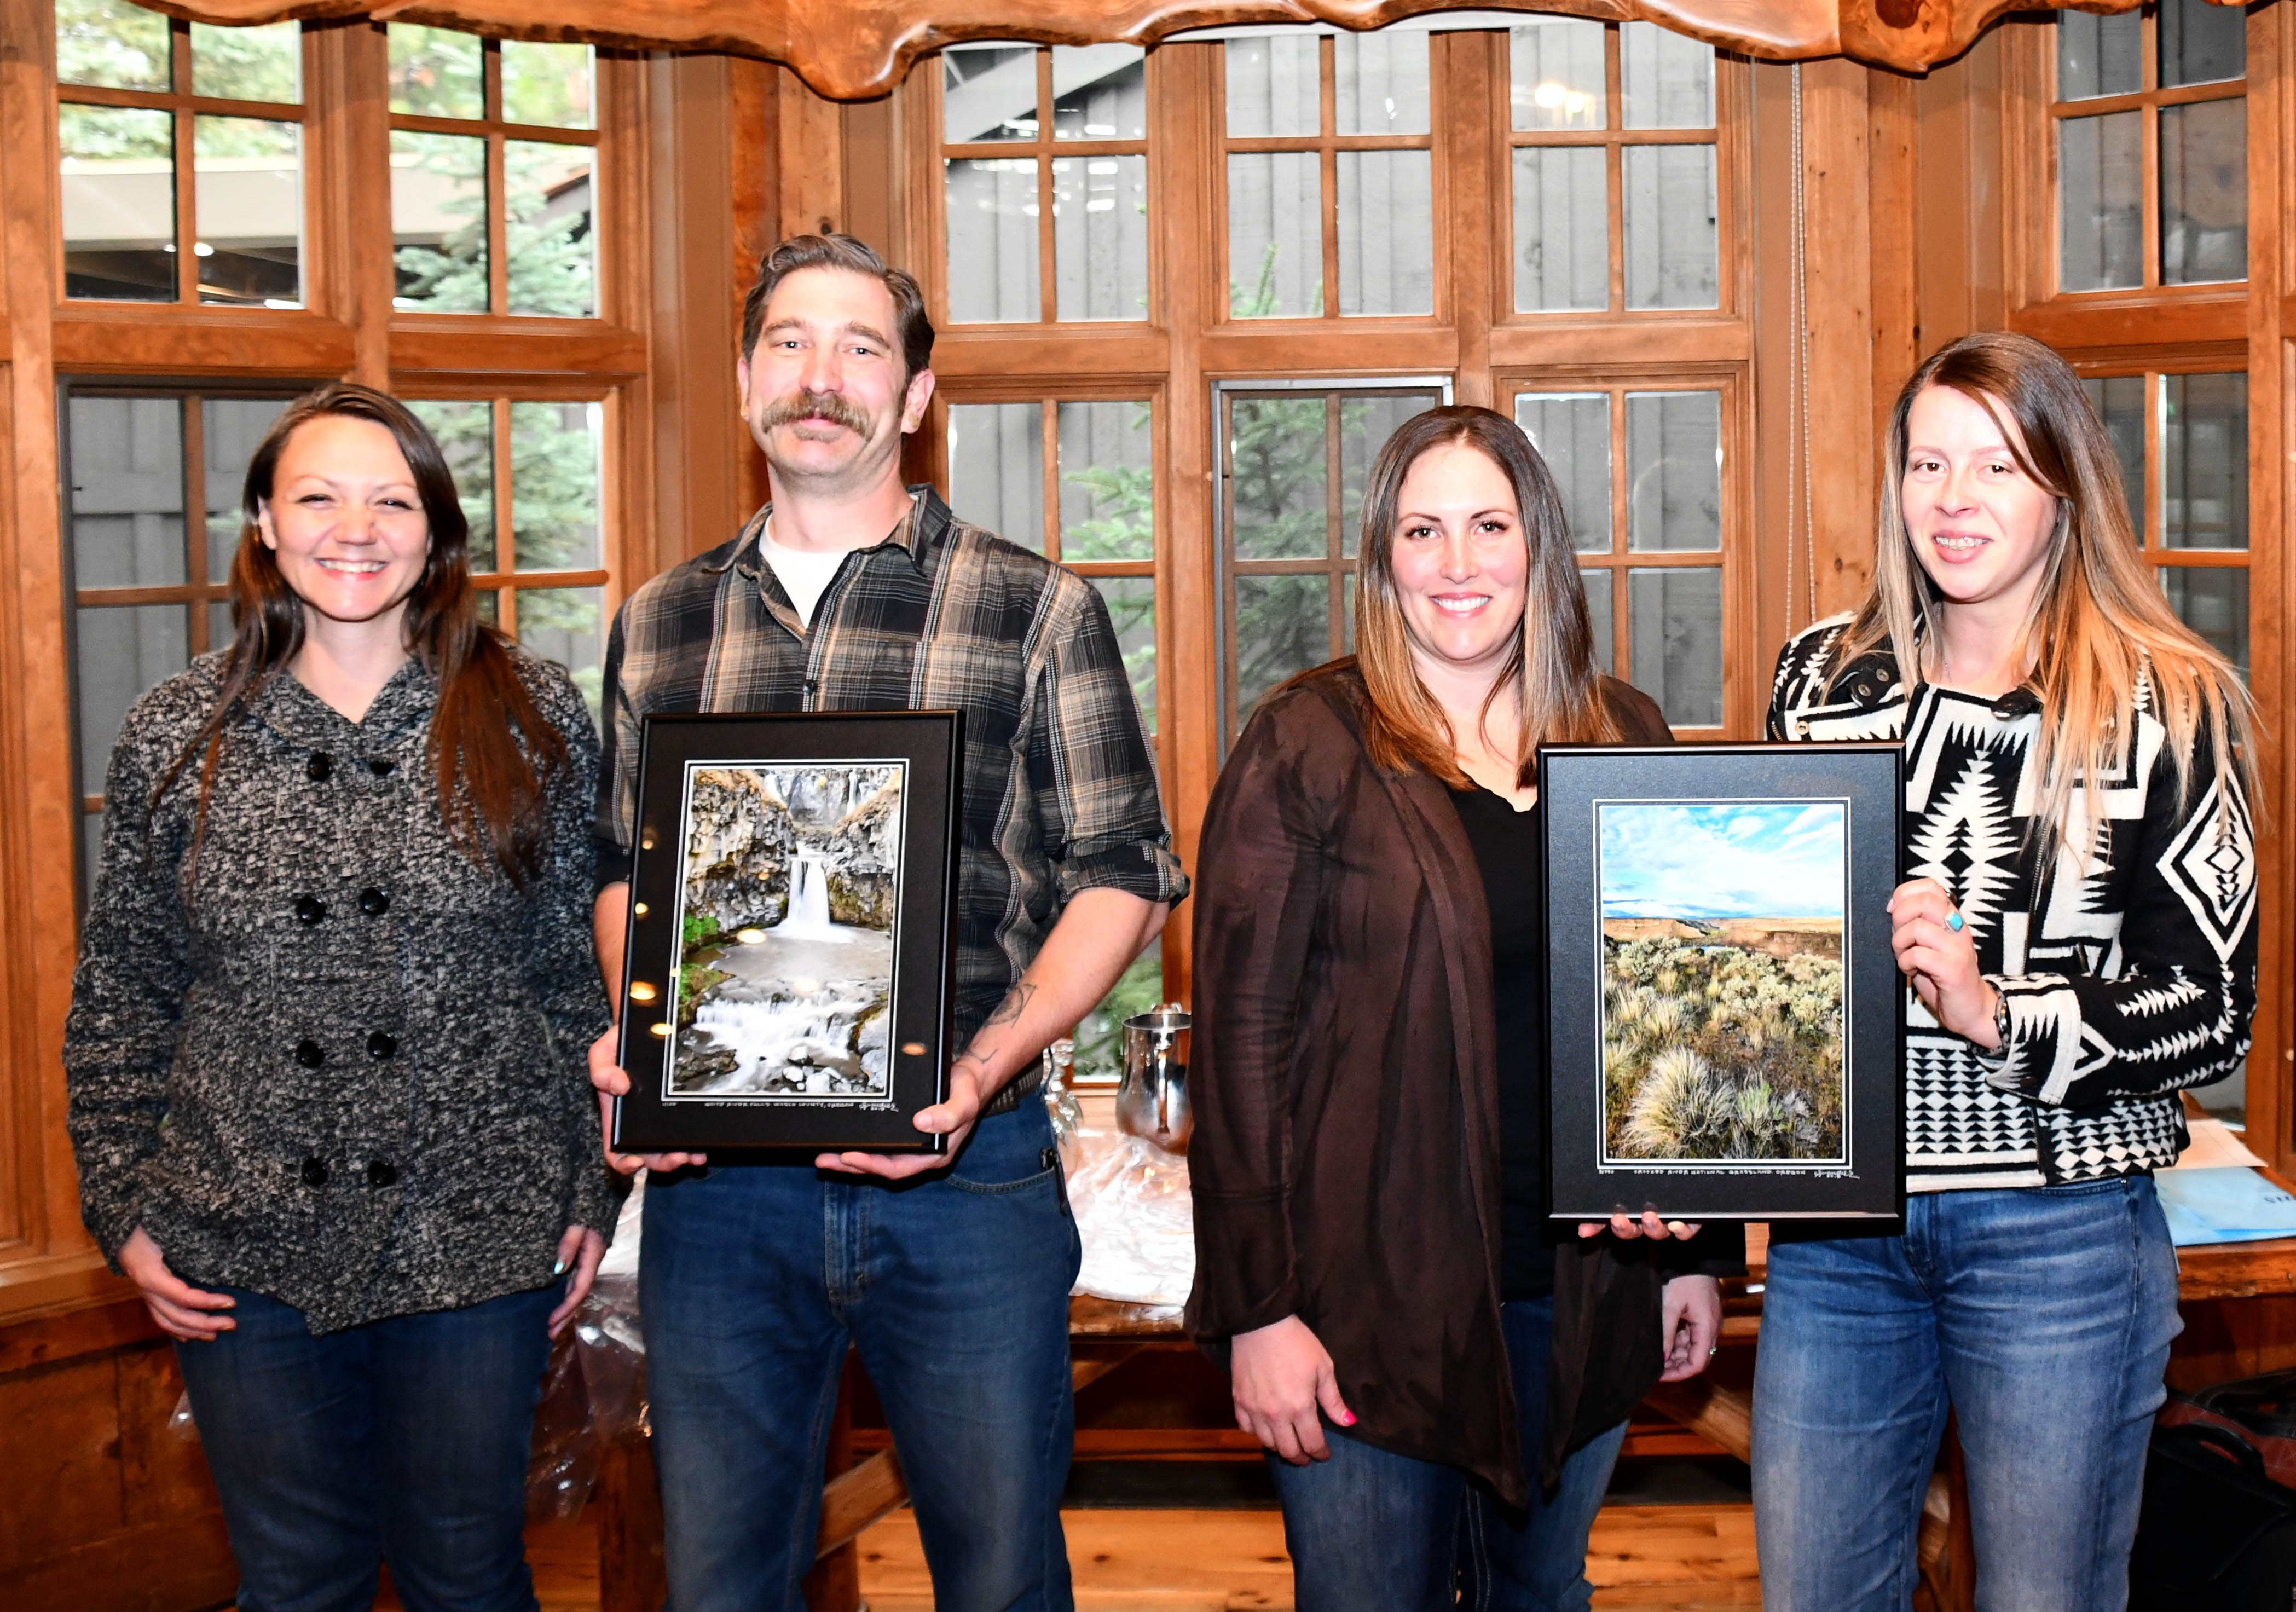 Pictured Left to Right: Shilah Olson, District Manager for the Wasco Soil and Water Conservation District (SWCD); Dan Esposito, District Conservationist for Wasco County with the USDA Natural Resources Conservation Service (NRCS); Amanda Whitman, District Manager for the Sherman SWCD; and DelRae Fer